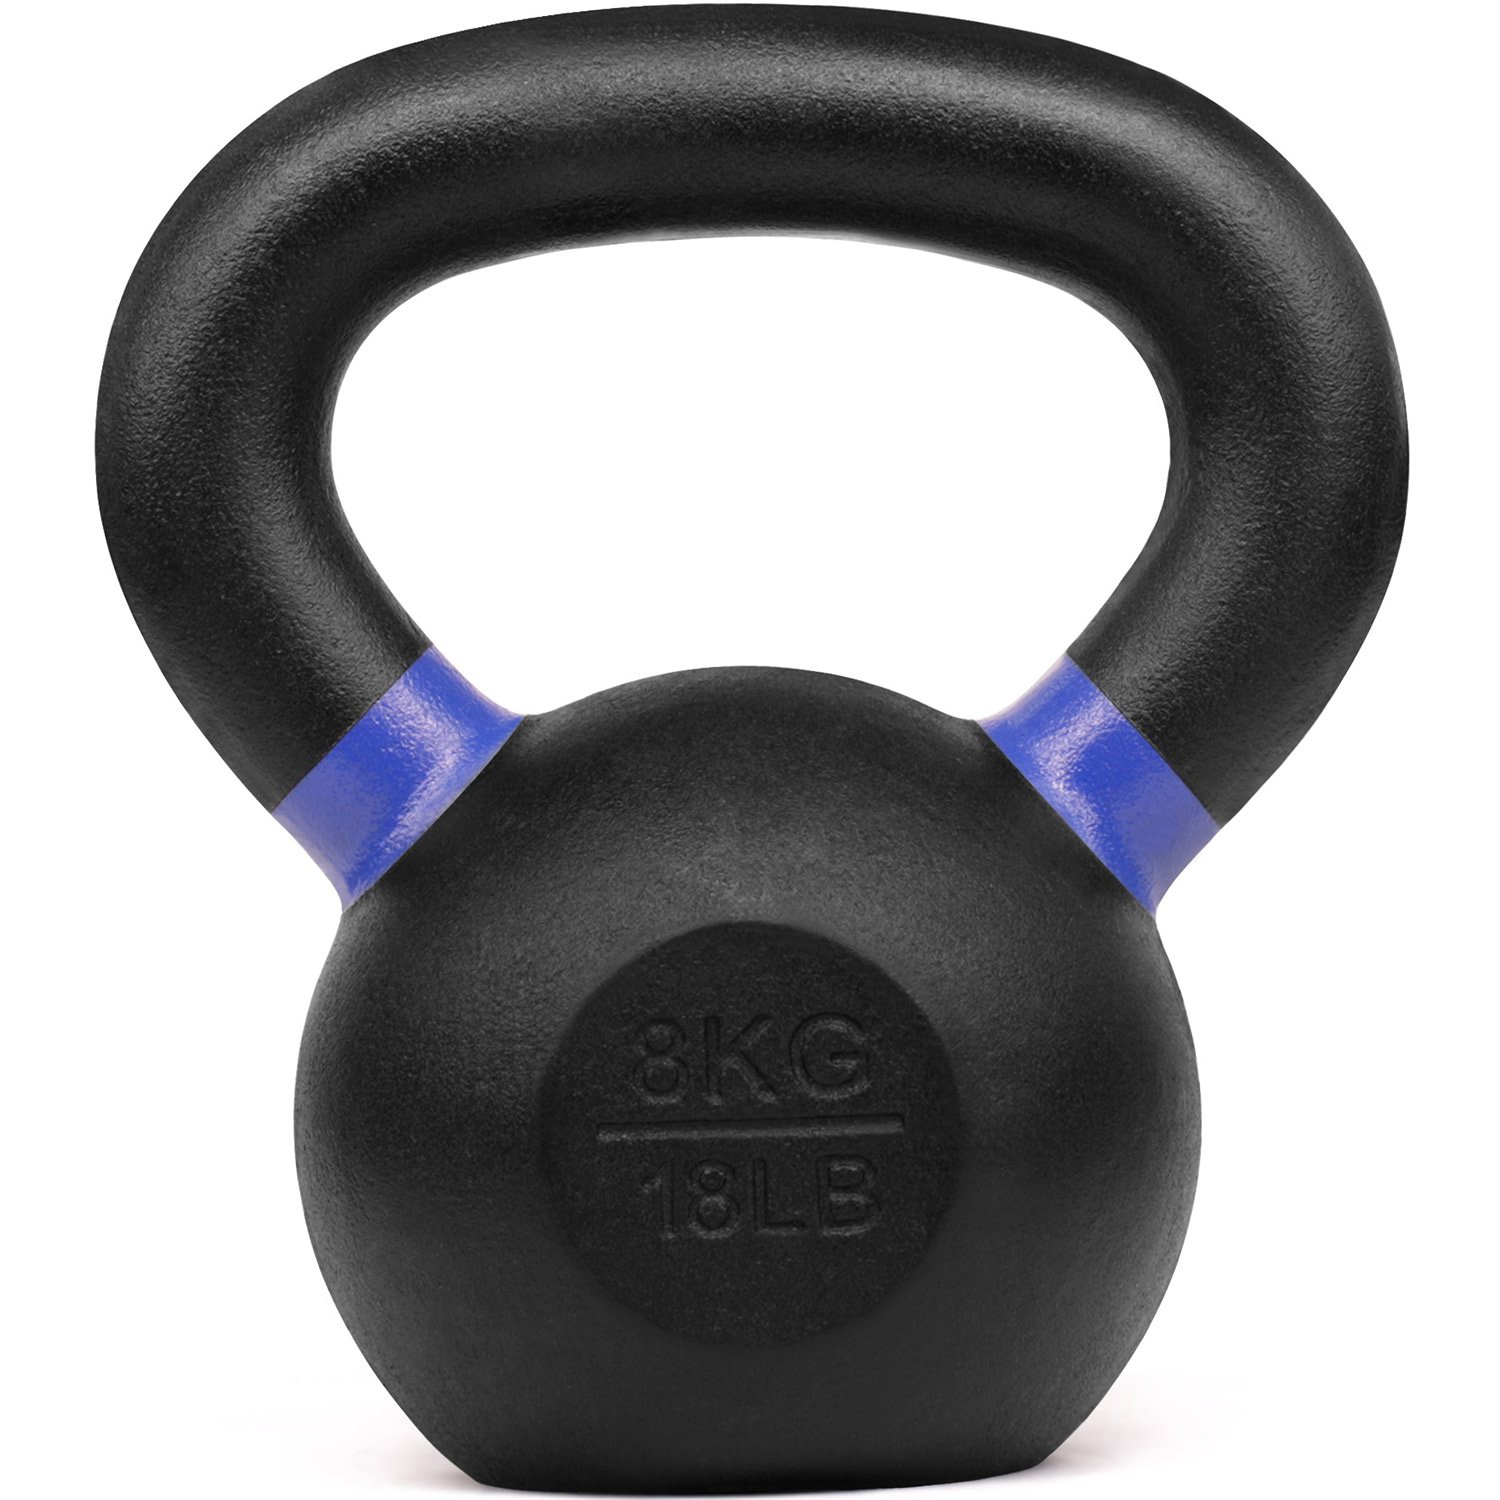 Yes4All Powder Coated Kettlebell Weights with Wide Handles & Flat Bottoms - 8kg/18lbs Cast Iron Kettlebells for Strength, Conditioning & Cross-Training